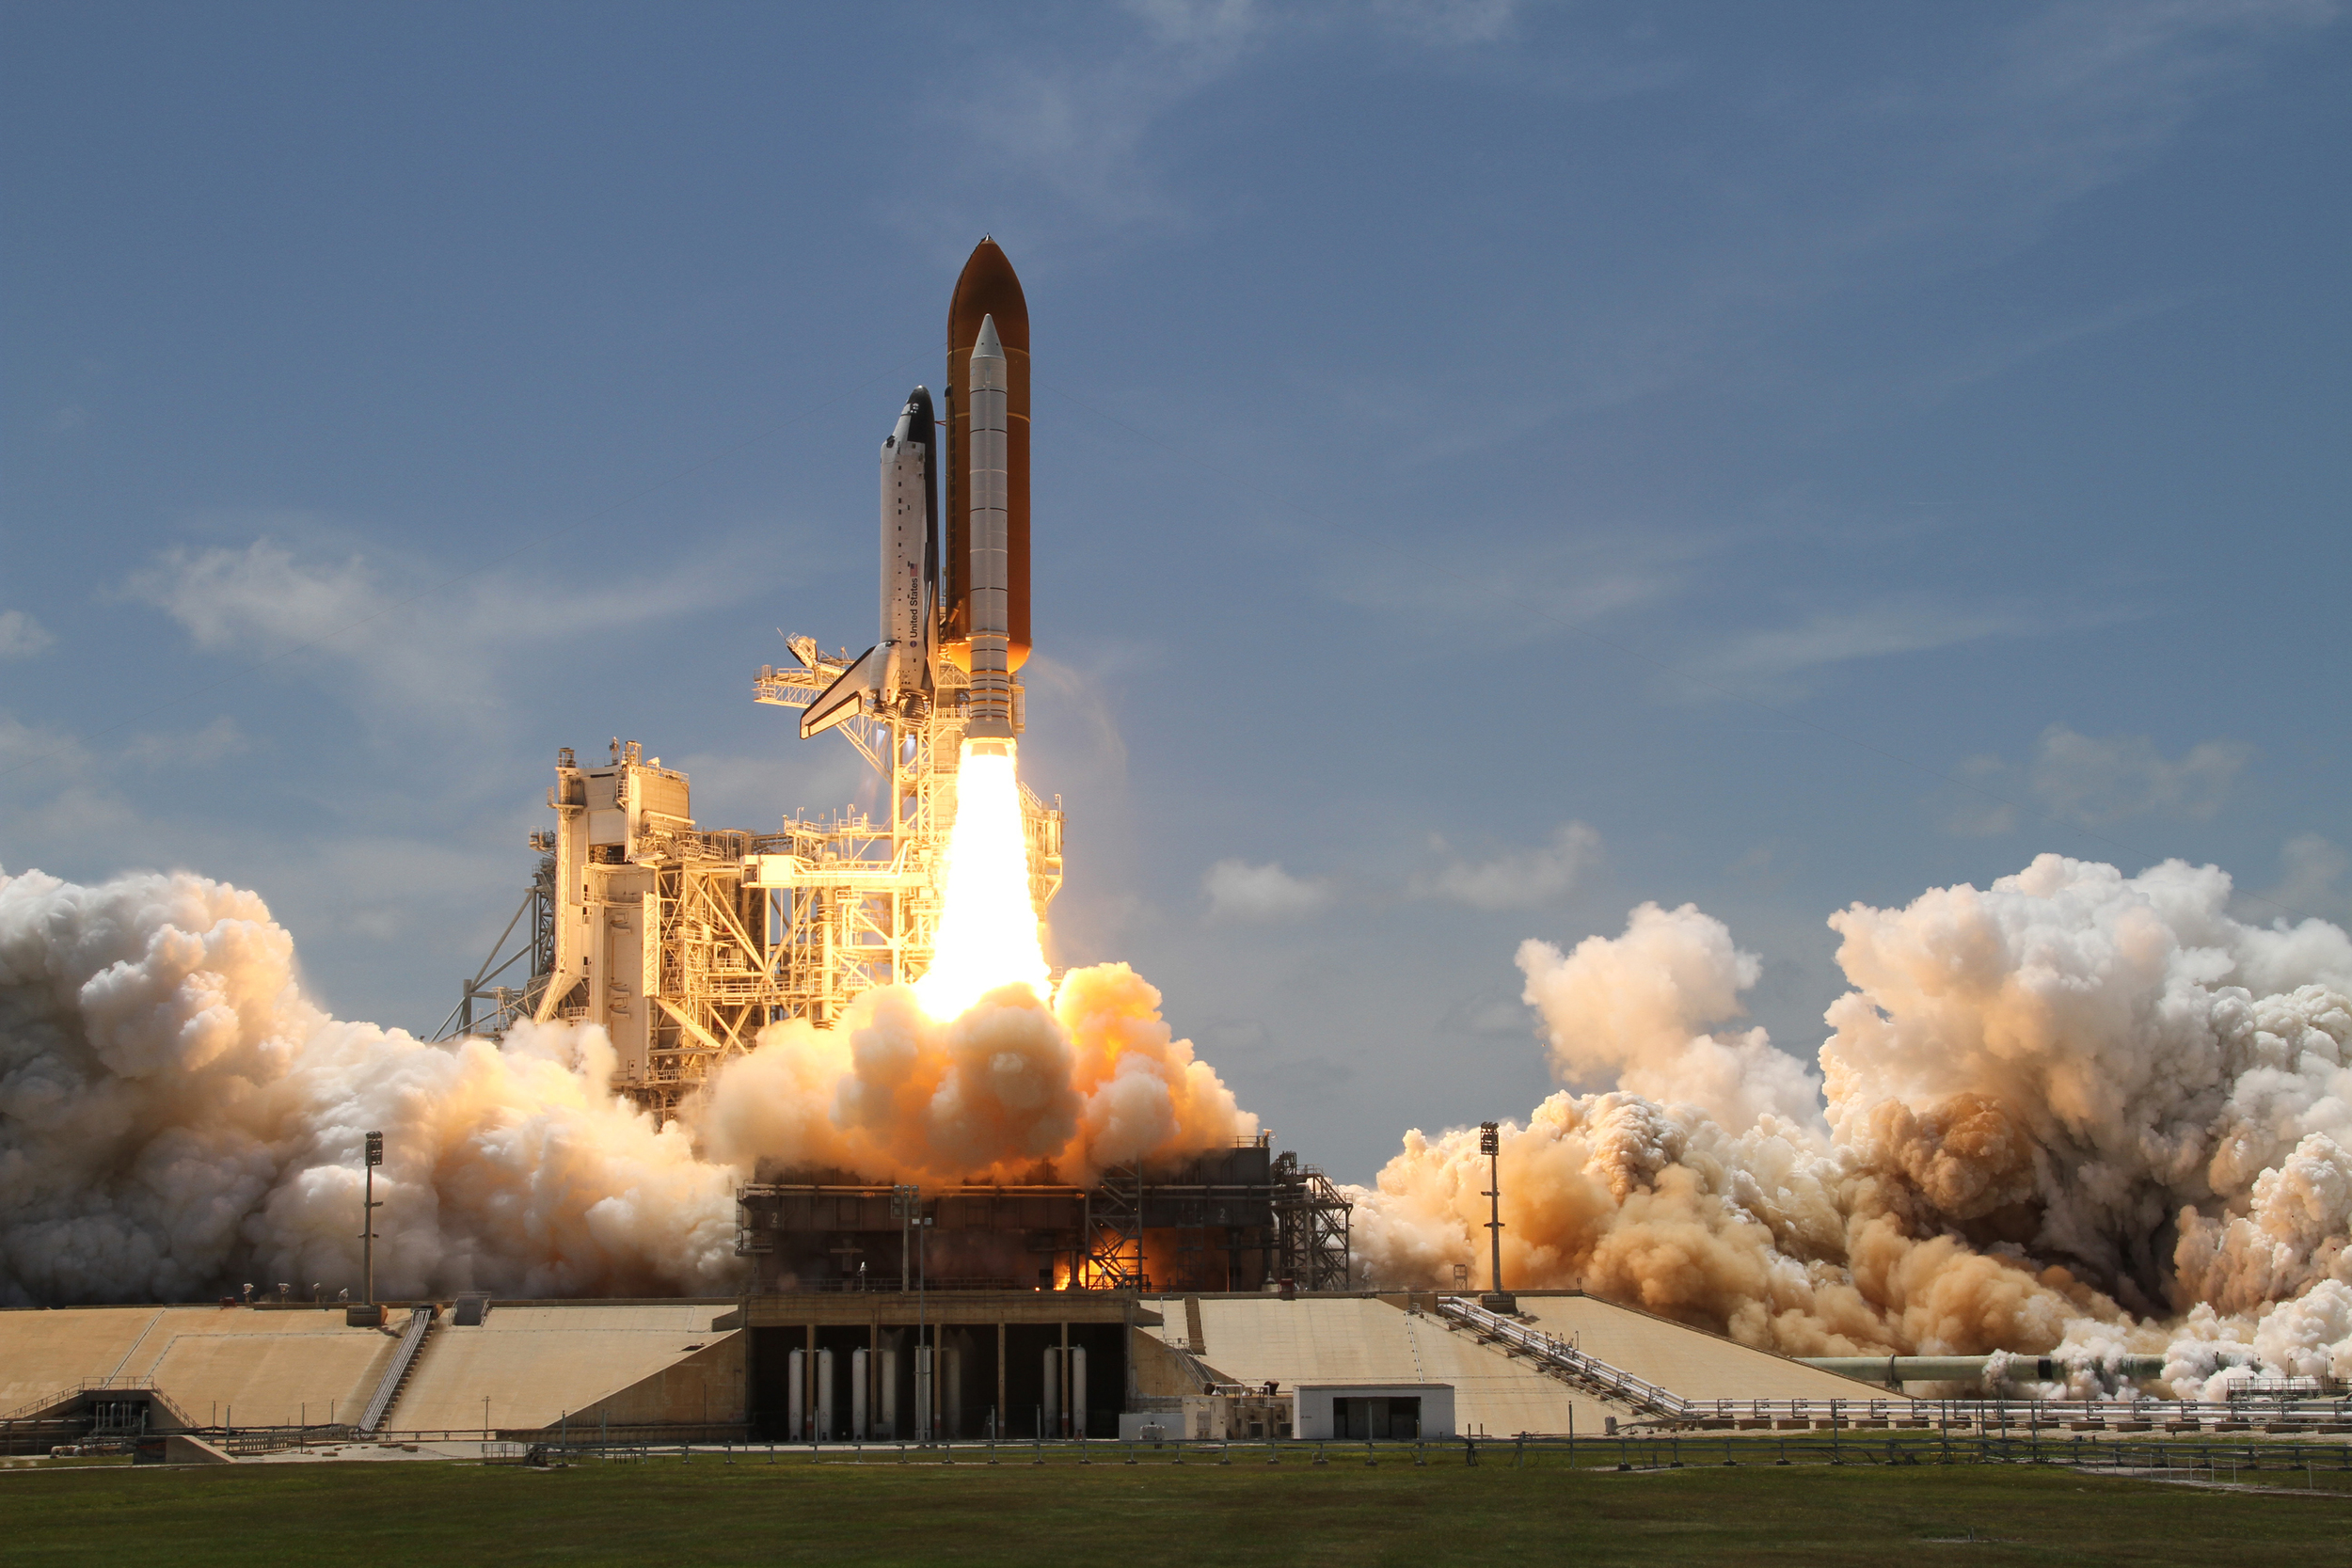 A space shuttle launches from Kennedy Space Center, Florida. Photo Credit: NASA